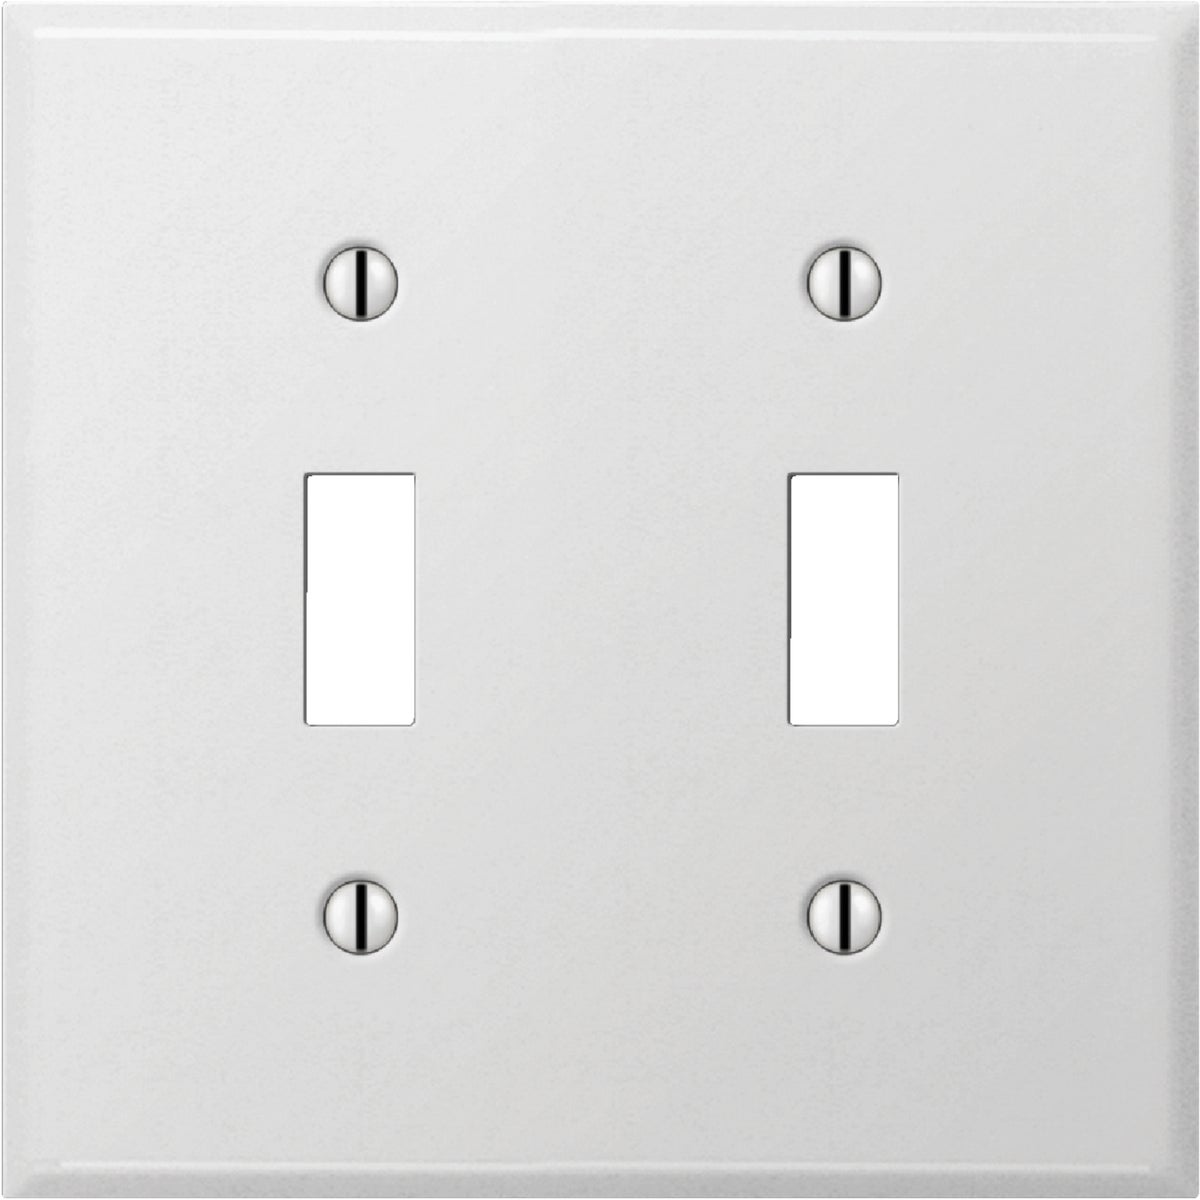 WHT DBL SWTCH WALL PLATE - 8WS102 by Jackson Deerfield Mf